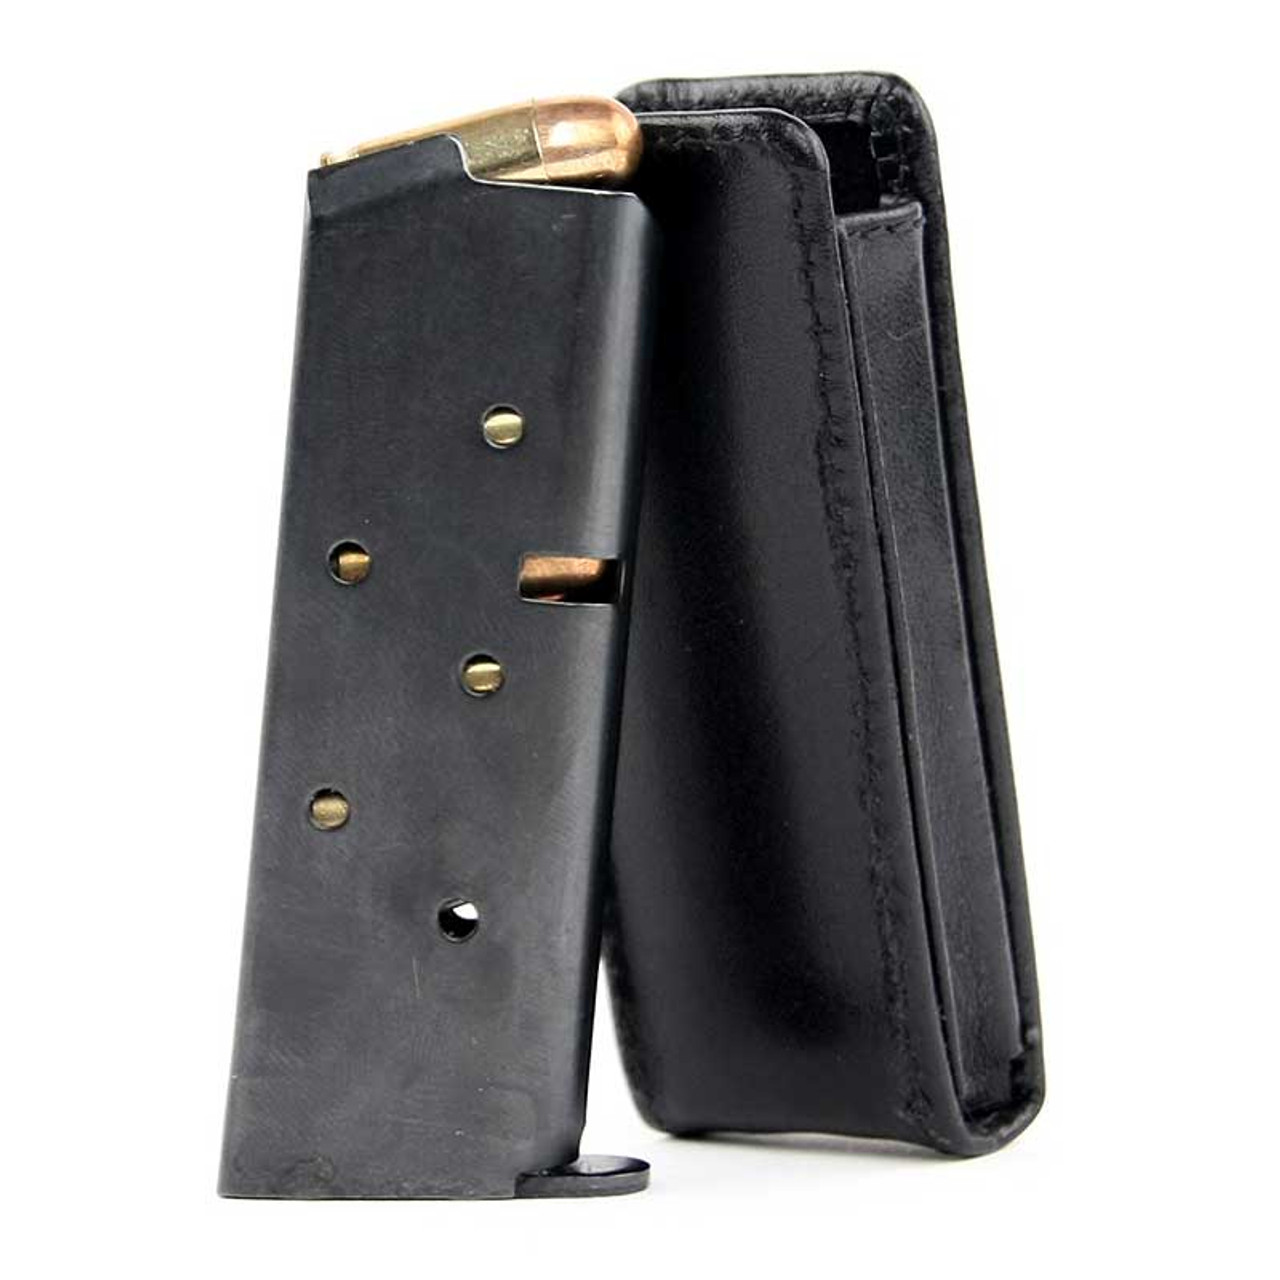 Kahr PM9 Magazine Pocket Protector